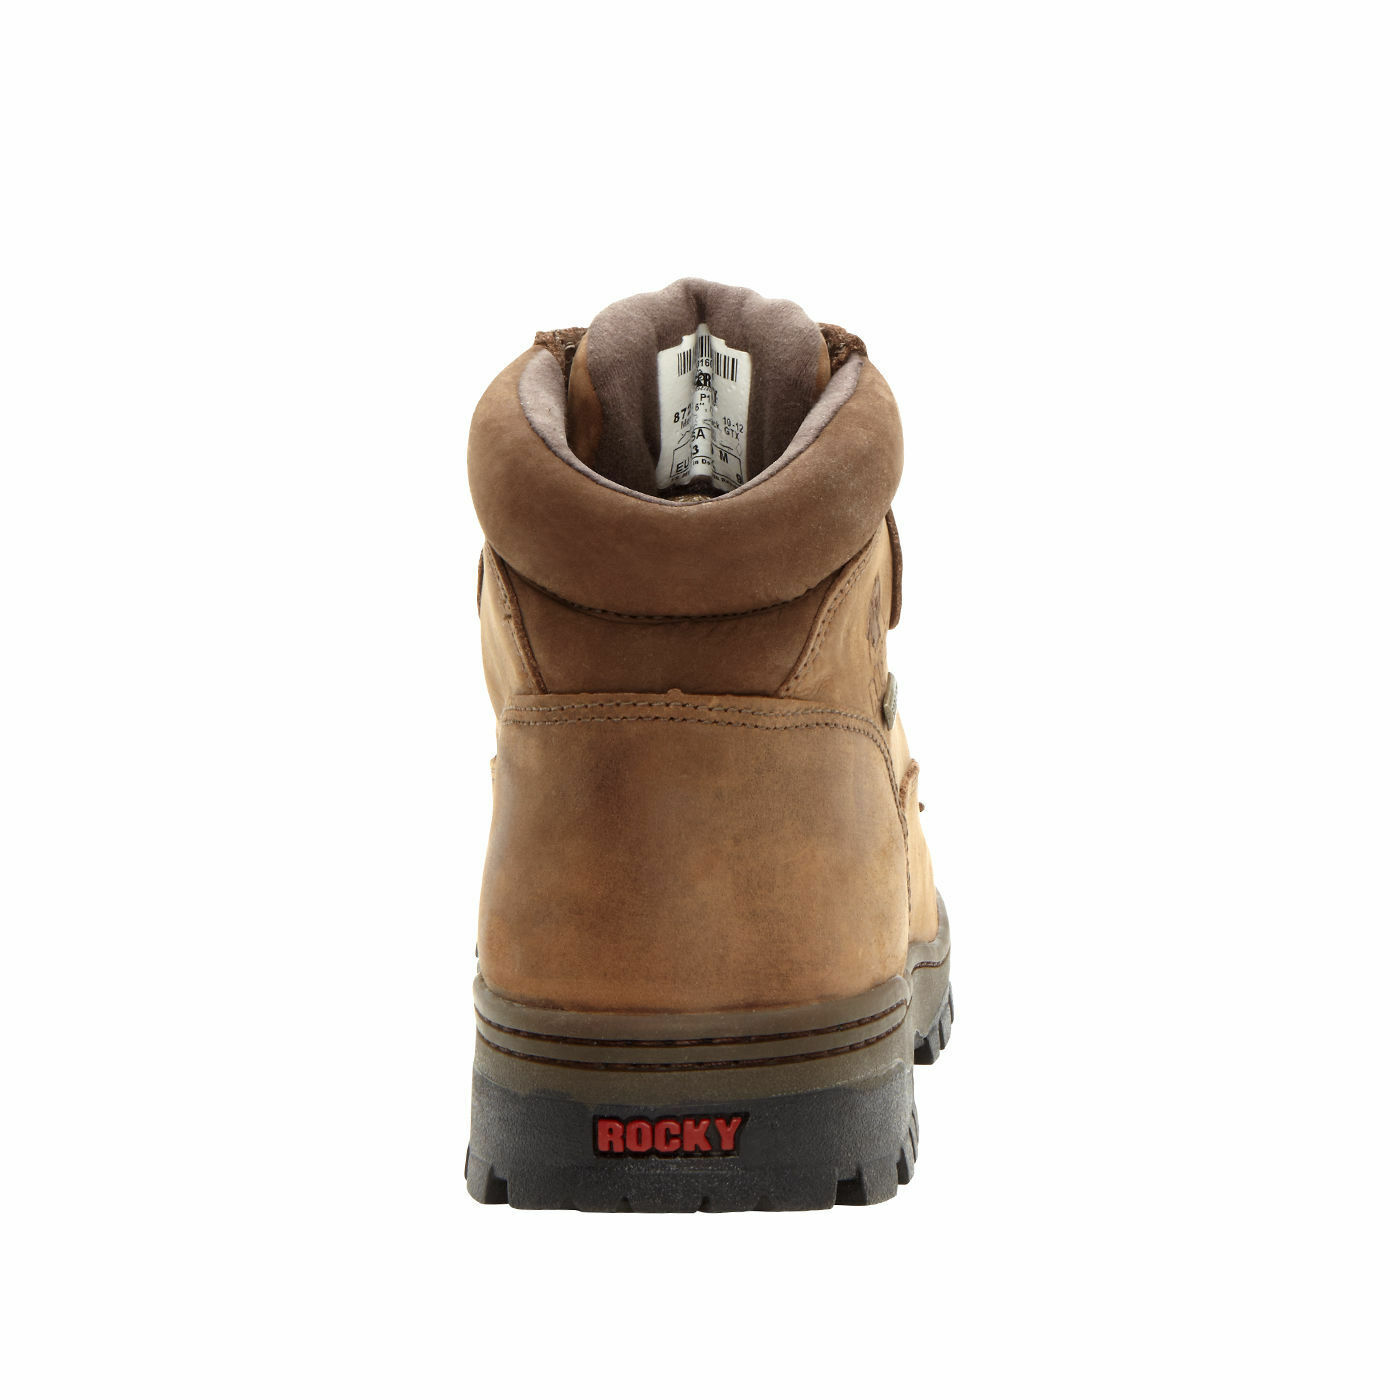 ROCKY OUTBACK GORE-TEX GORE-TEX GORE-TEX WATERPROOF HIKER BOOTS 8723 * ALL SIZES - NEW d74103